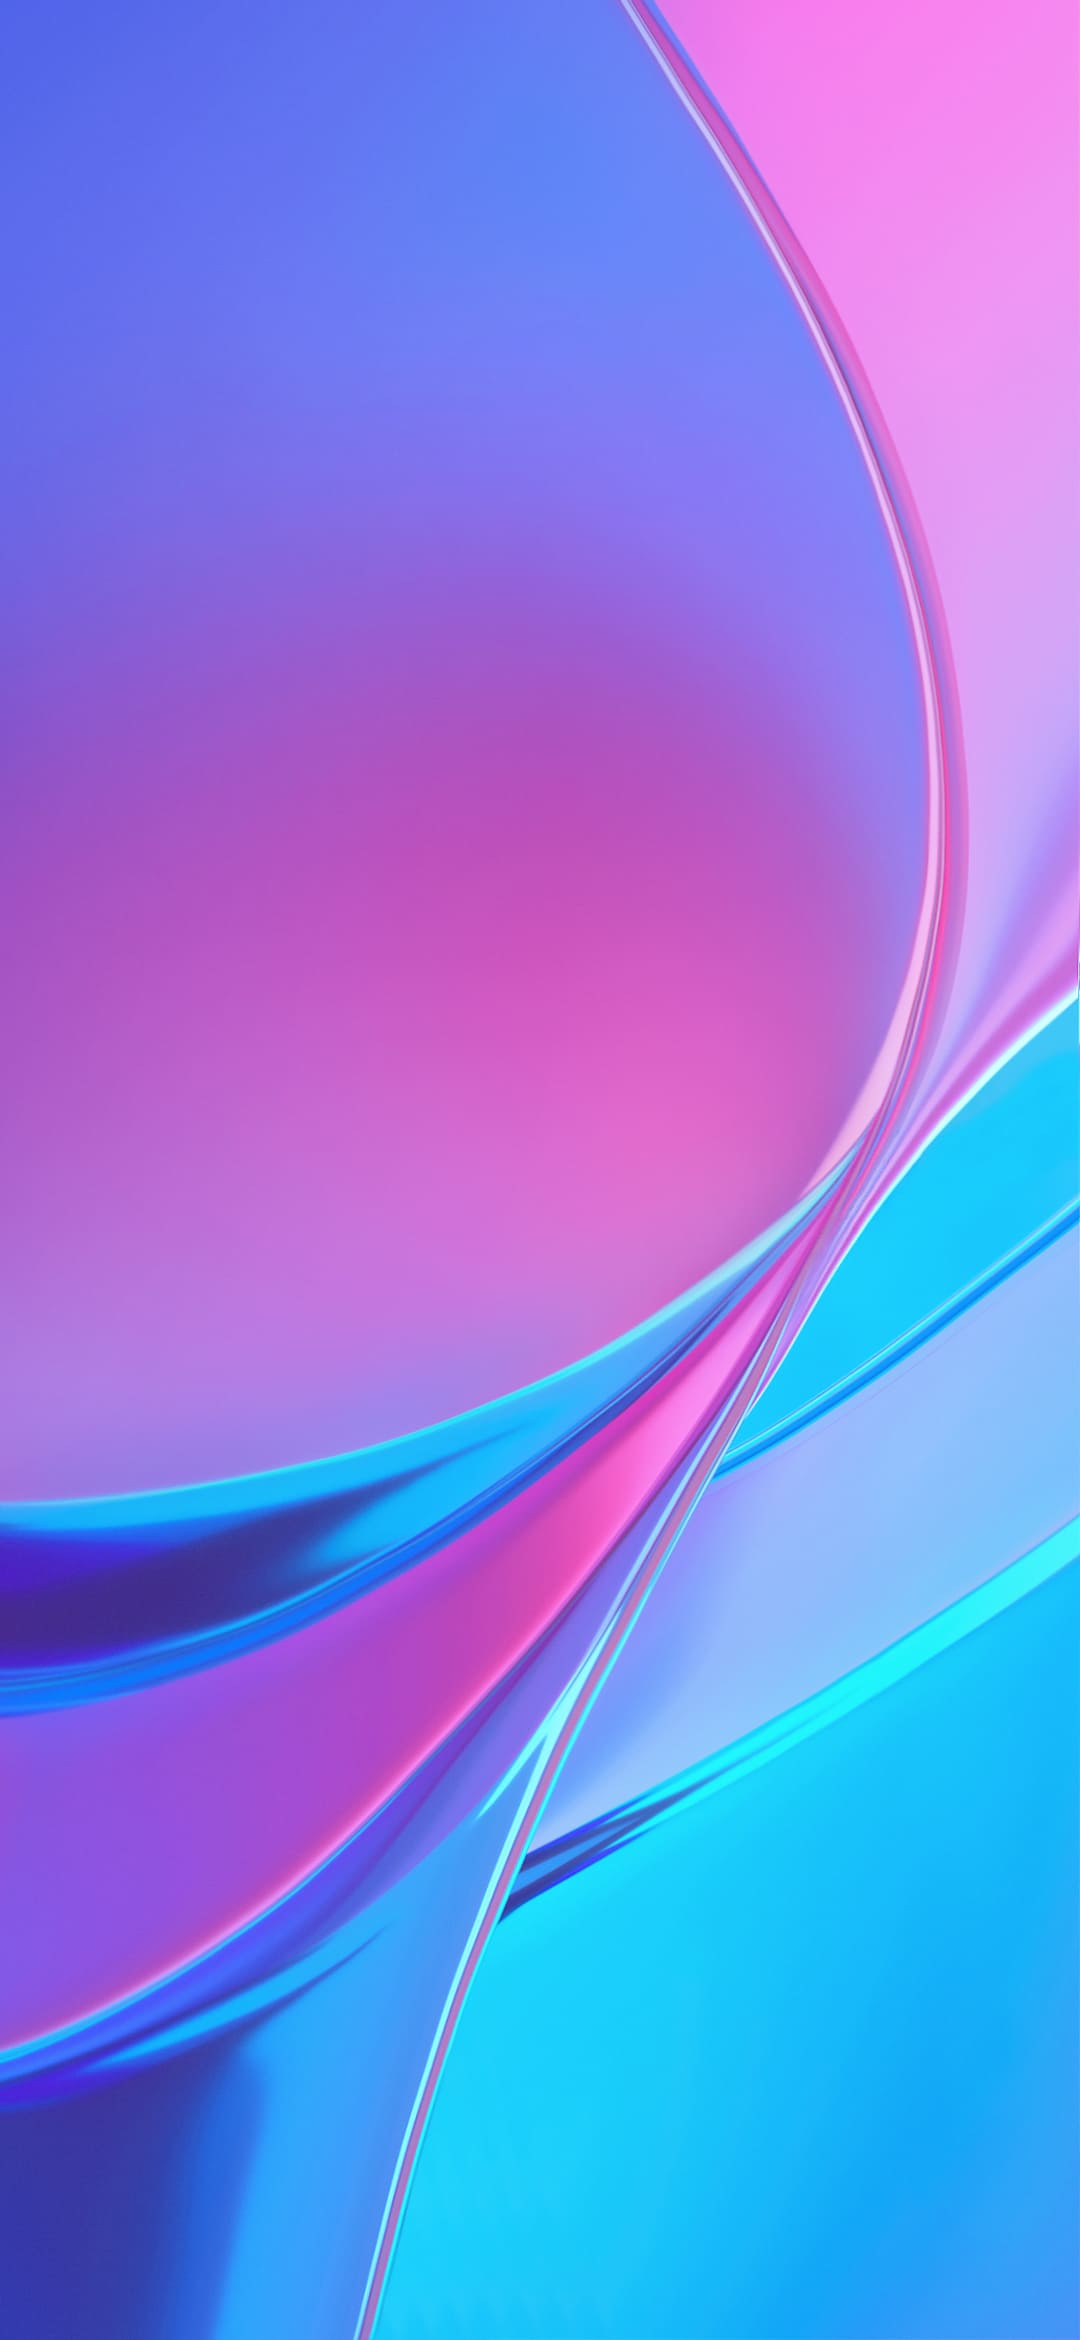 Redmi 7A Stock Wallpapers (Full HD+) - Download - DroidViews